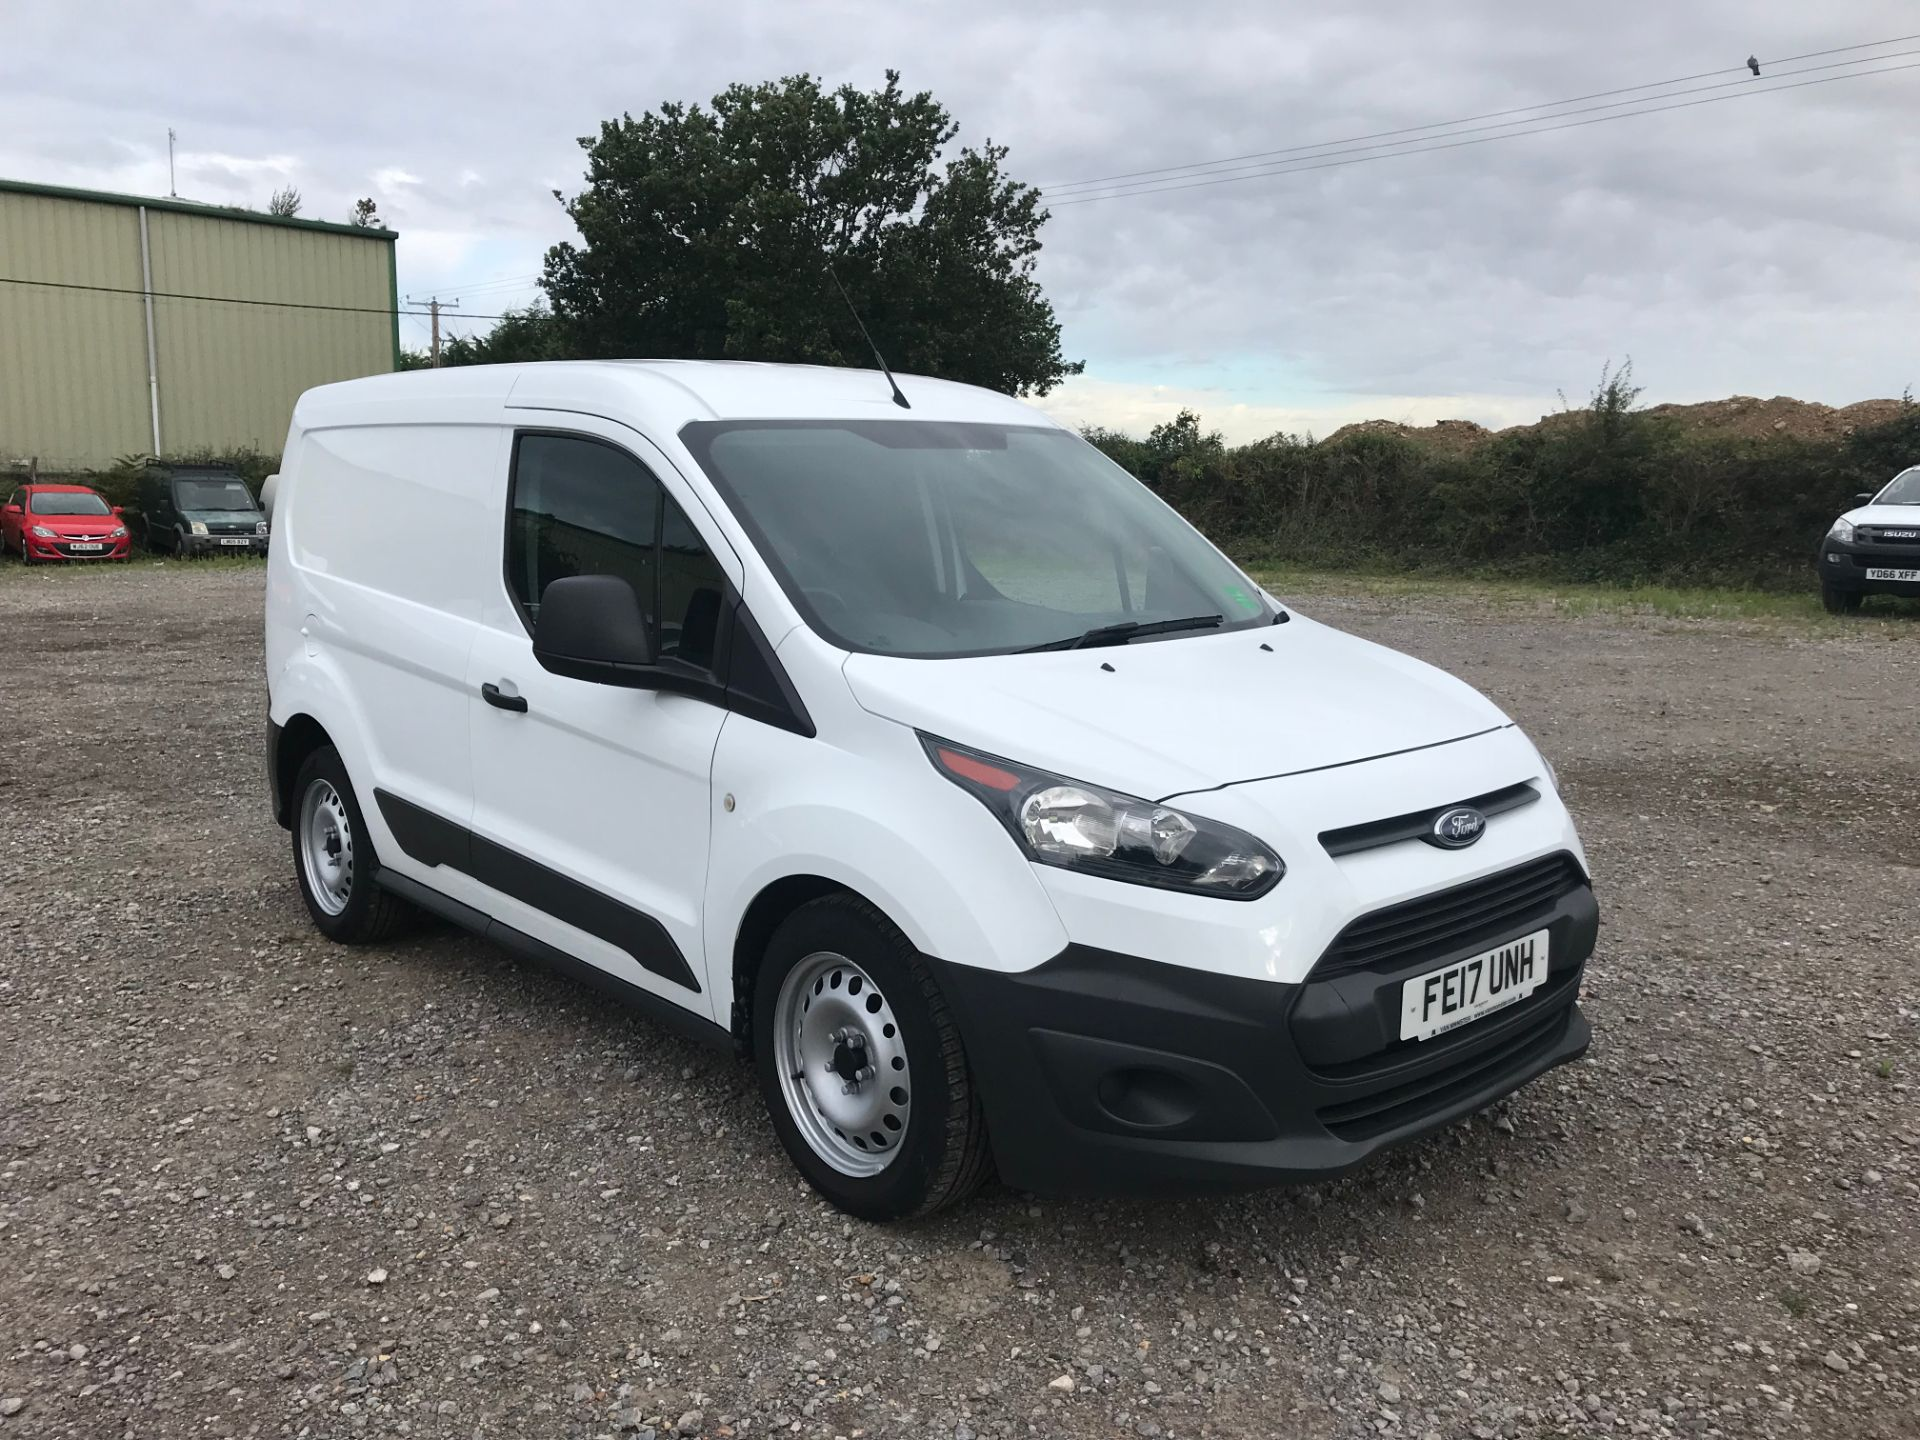 2017 Ford Transit Connect 1.5 Tdci 75Ps Van (FE17UNH)